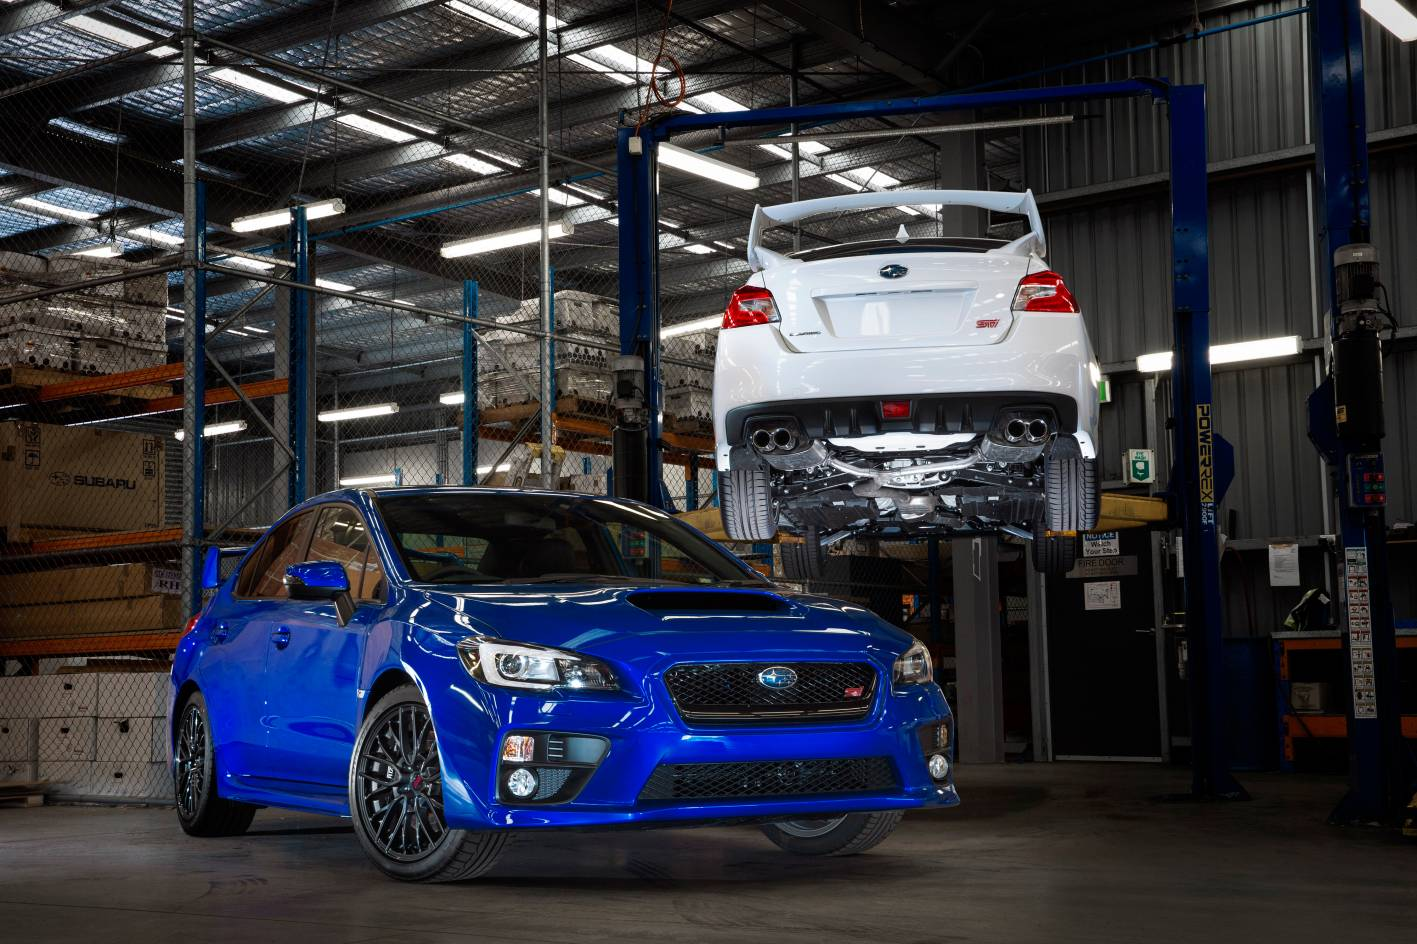 exclusive-motorsport-wrx-sti_02.jpg